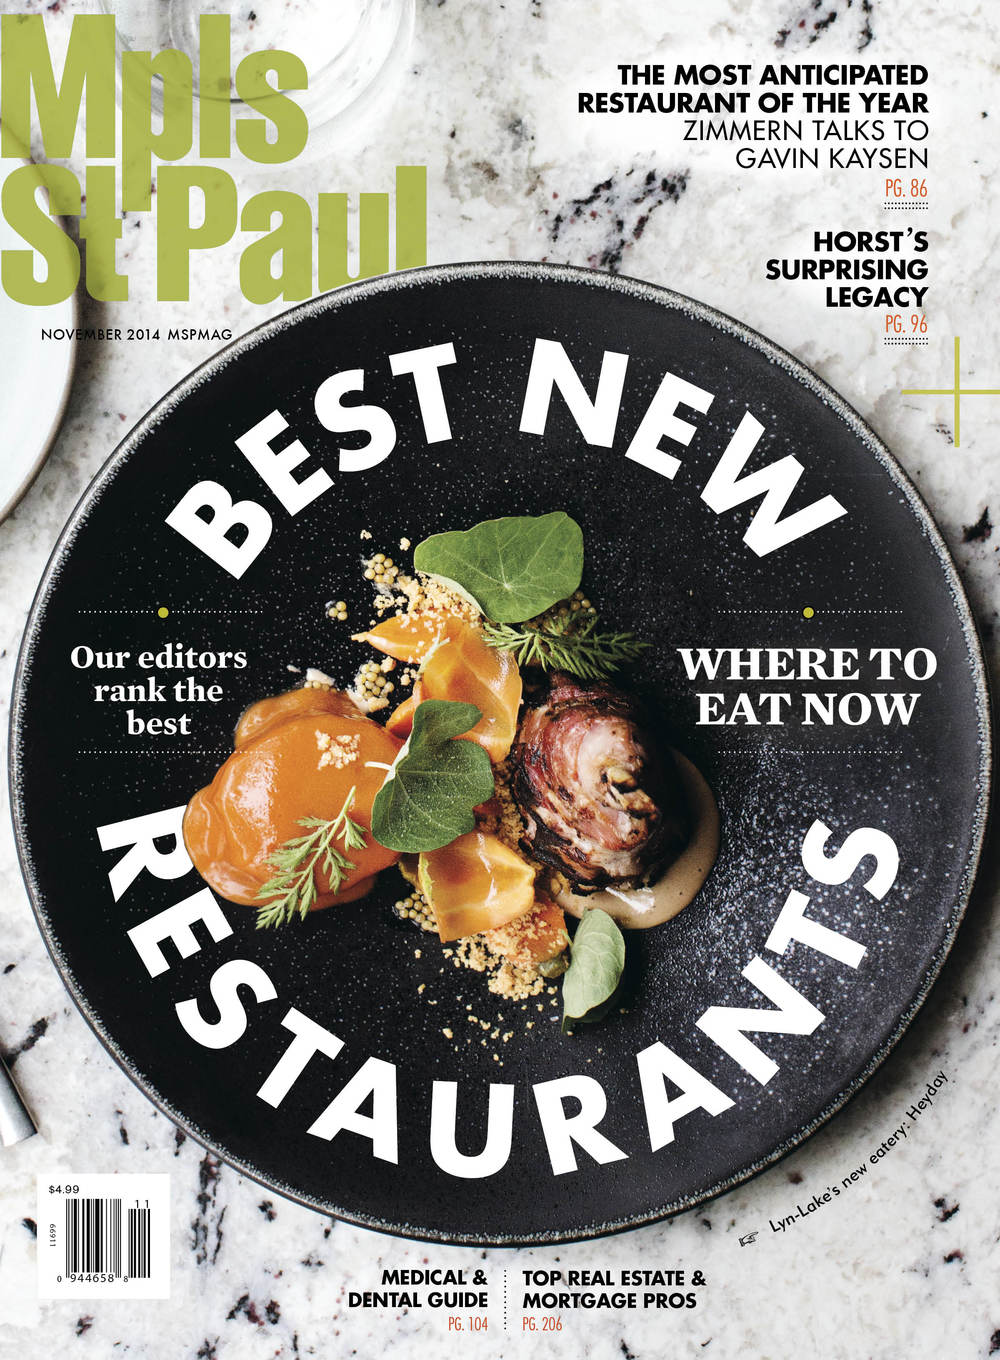 Creative Direction, Styling & Design: Liz Gardner for Mpls. St.Paul magazine Photo:  Eliesa Johnson